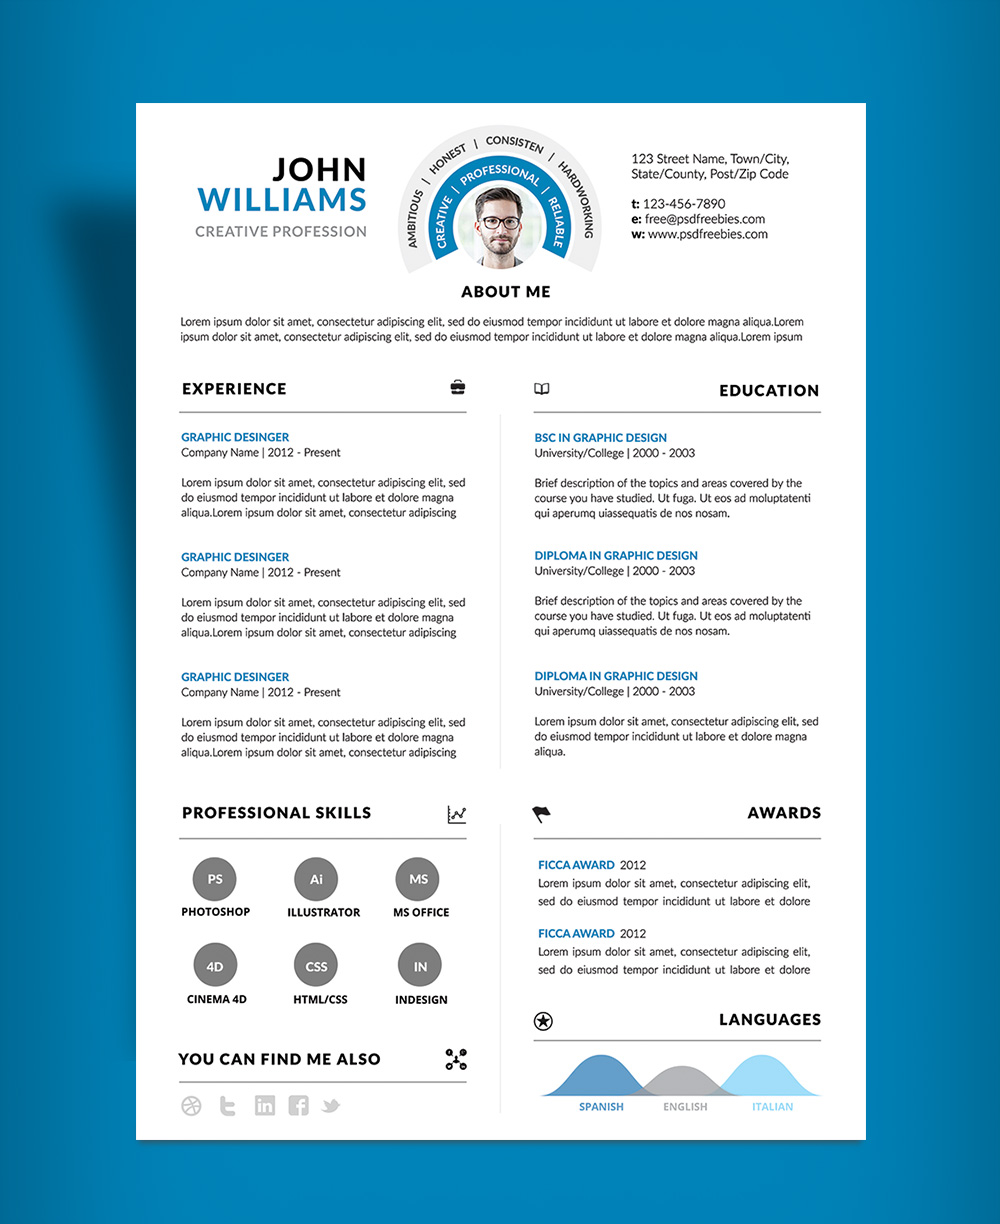 Clean and Professional Resume (CV) Design Template PSD File (2)